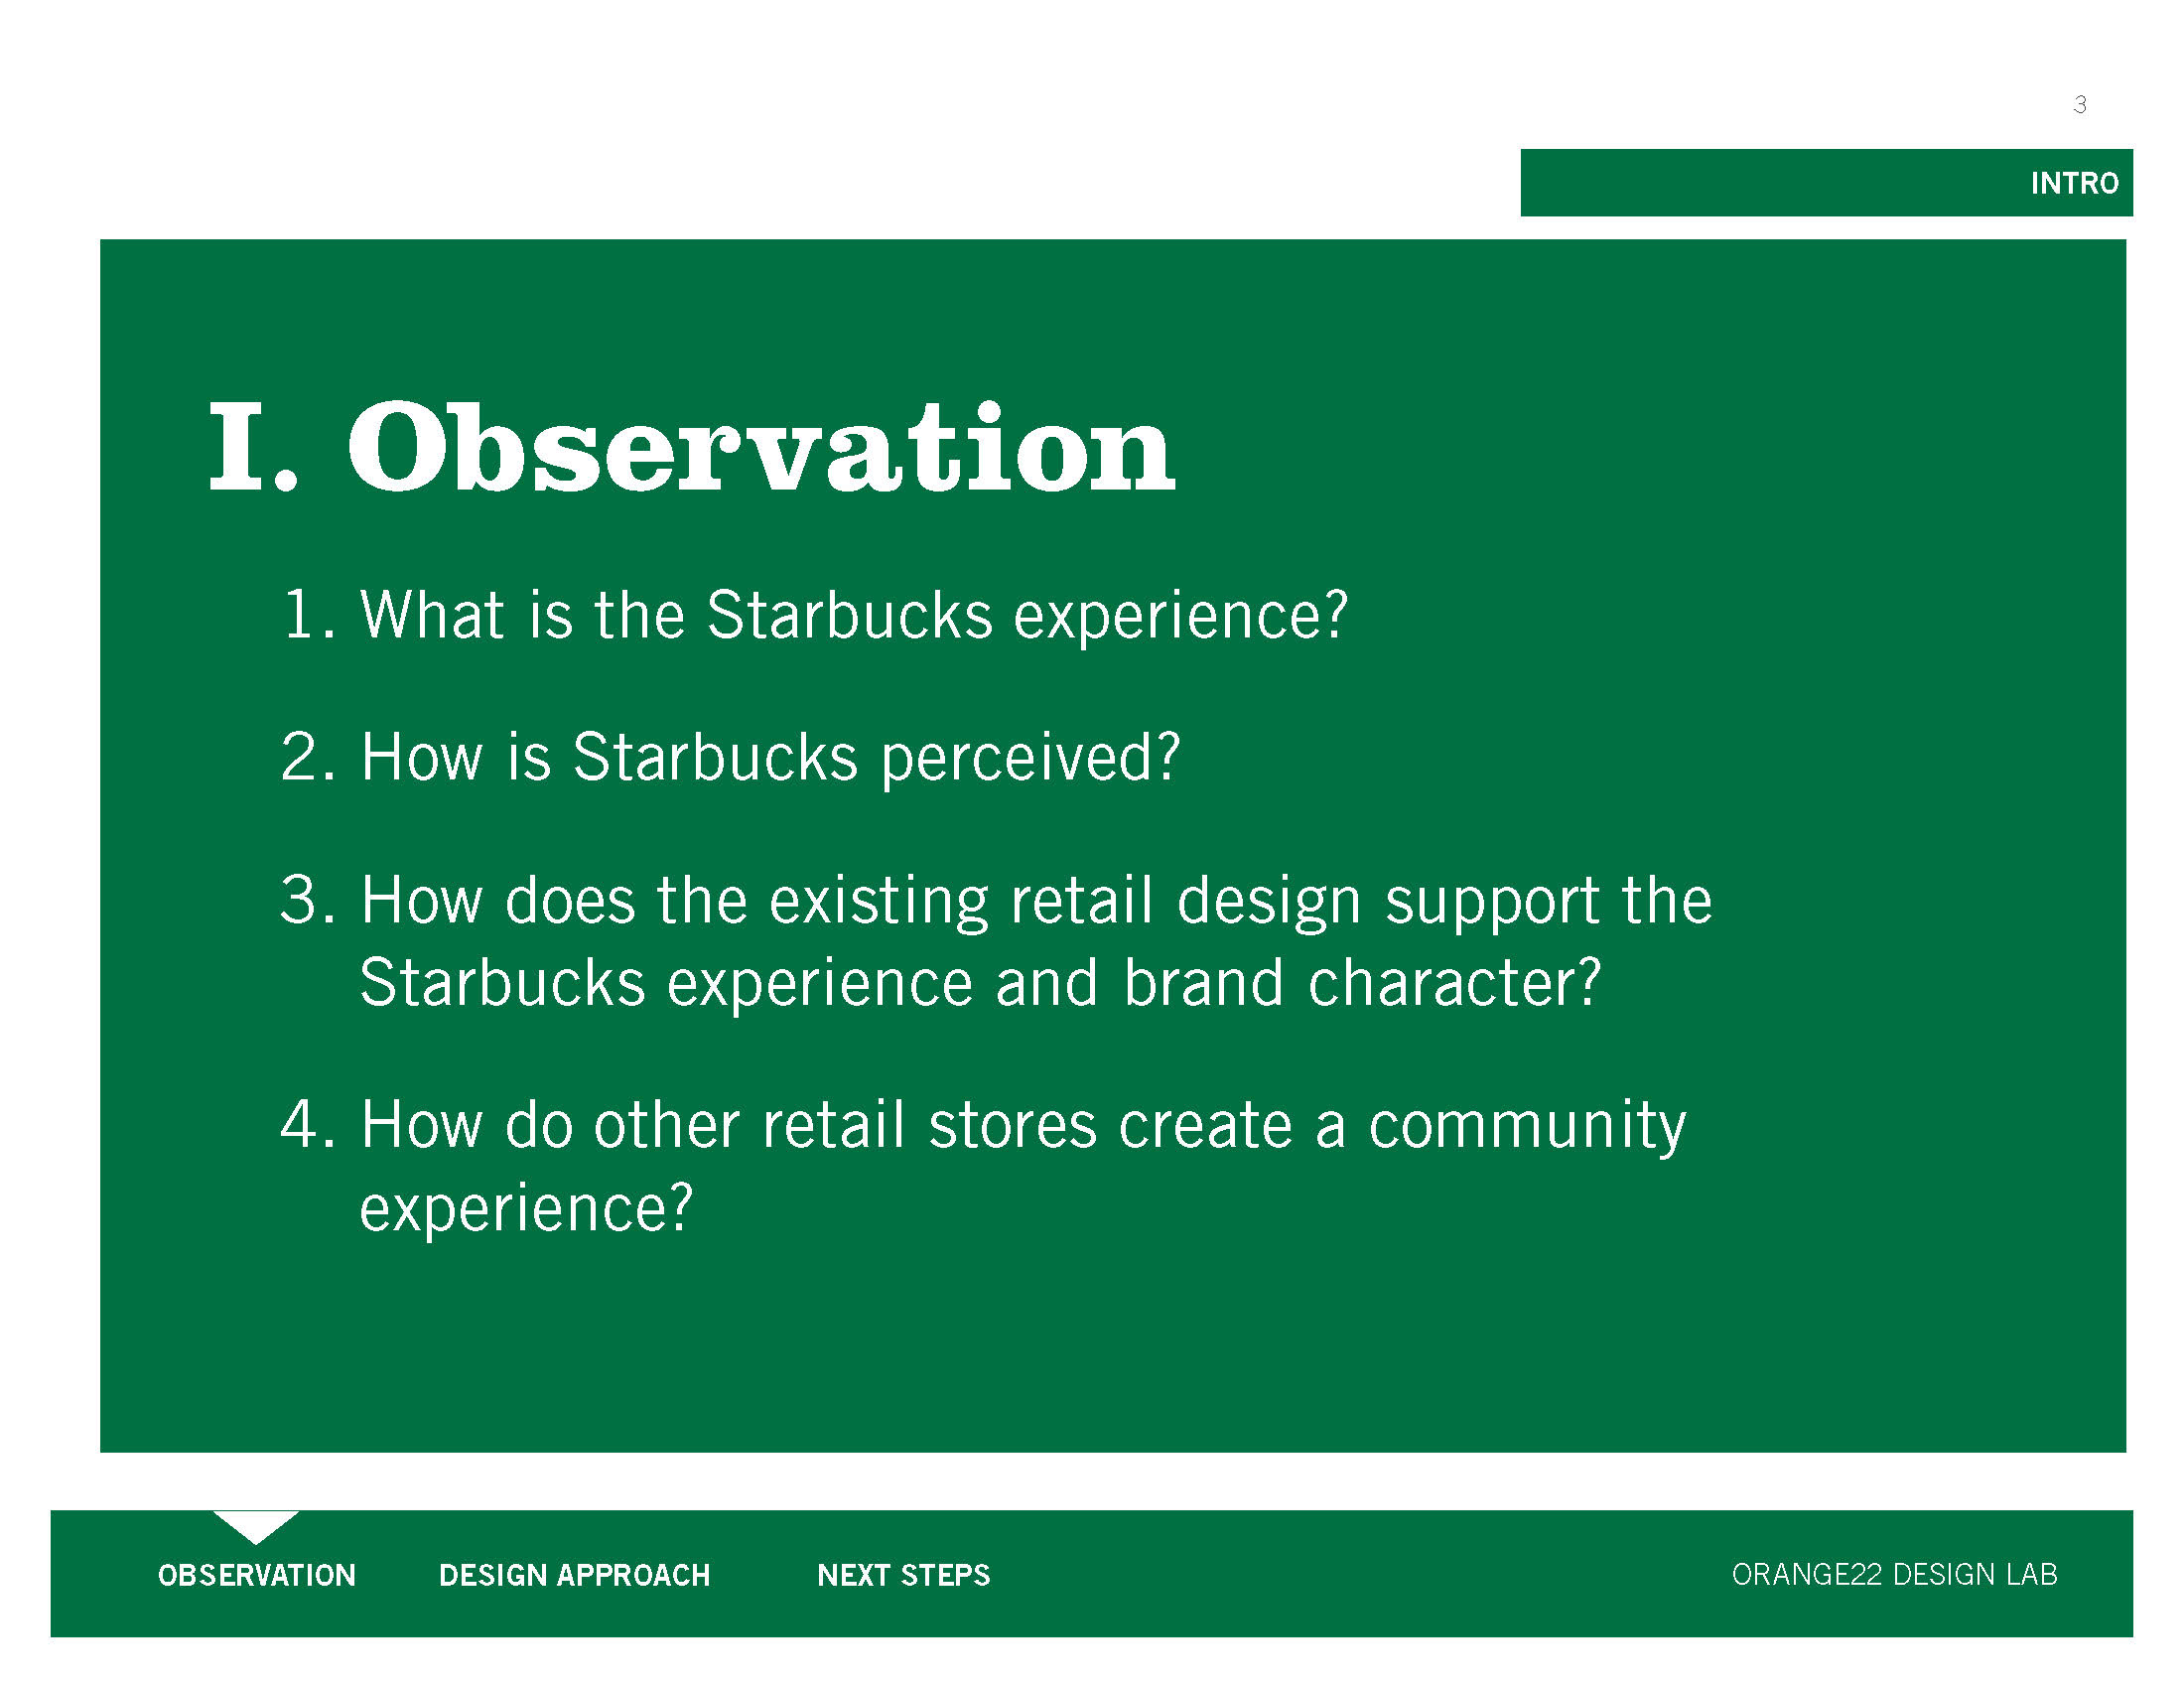 starbucks brand strategy experience design on